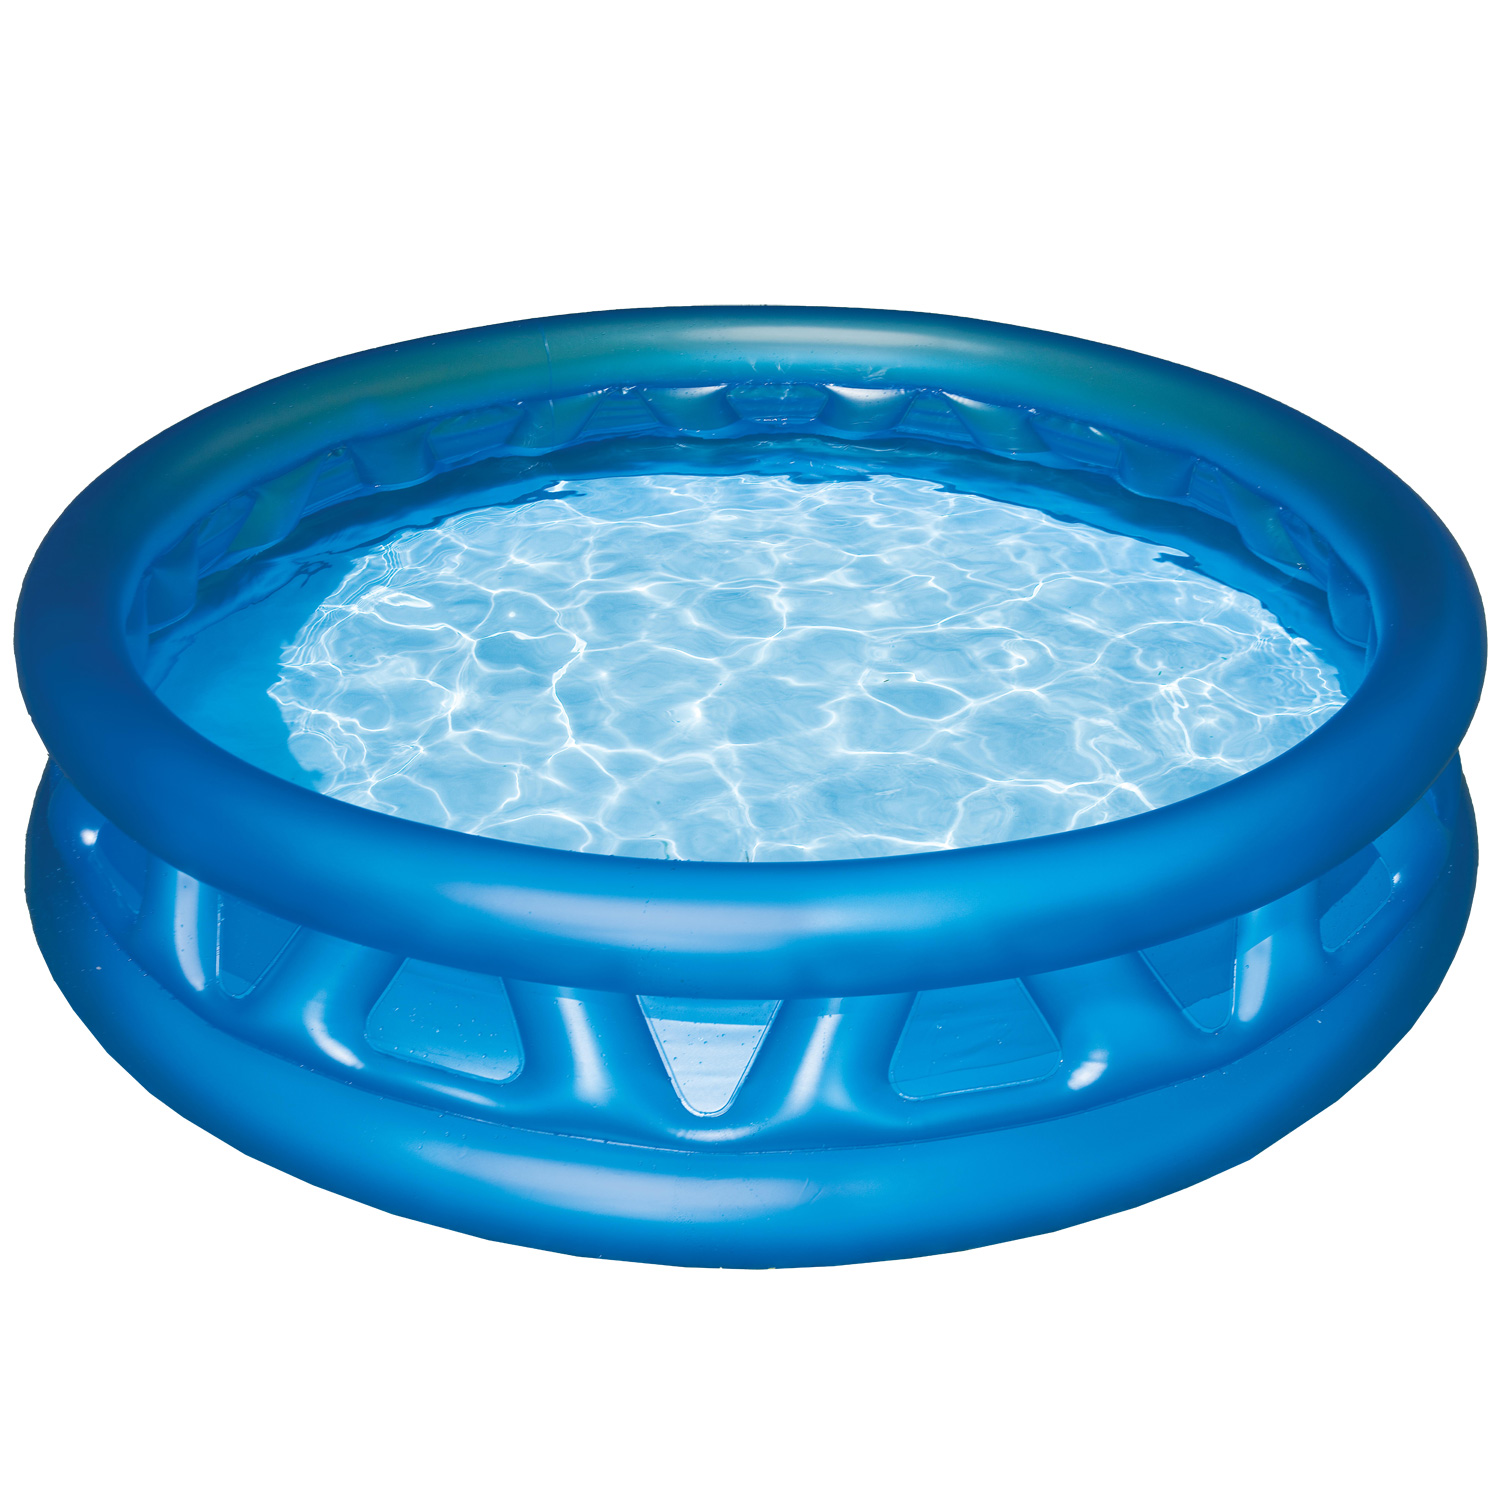 Piscine gonflable intex soft side pool piscines pour enfants - Petite piscine enfant ...